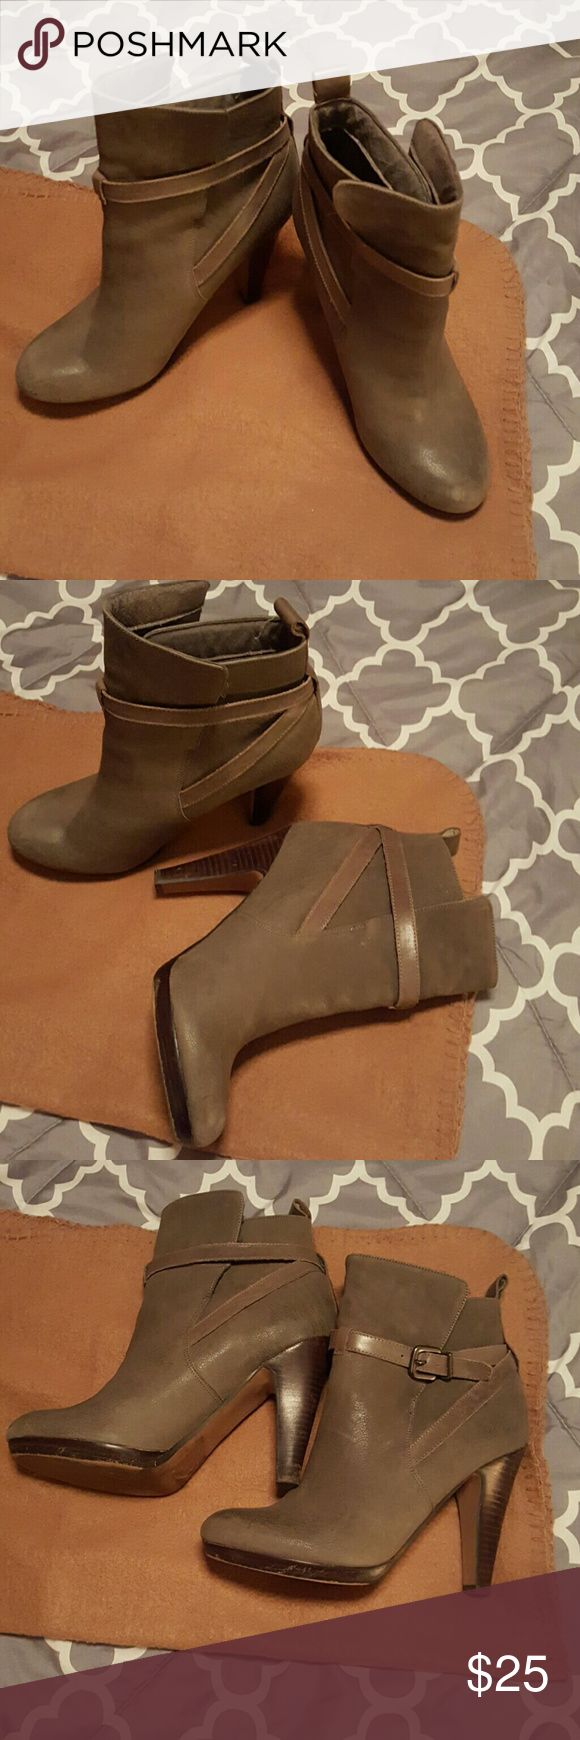 Gorgeous Aldo Boots. Perfect with any outfit! Beautiful Aldo Boots. Love them! Aldo Shoes Heeled Boots